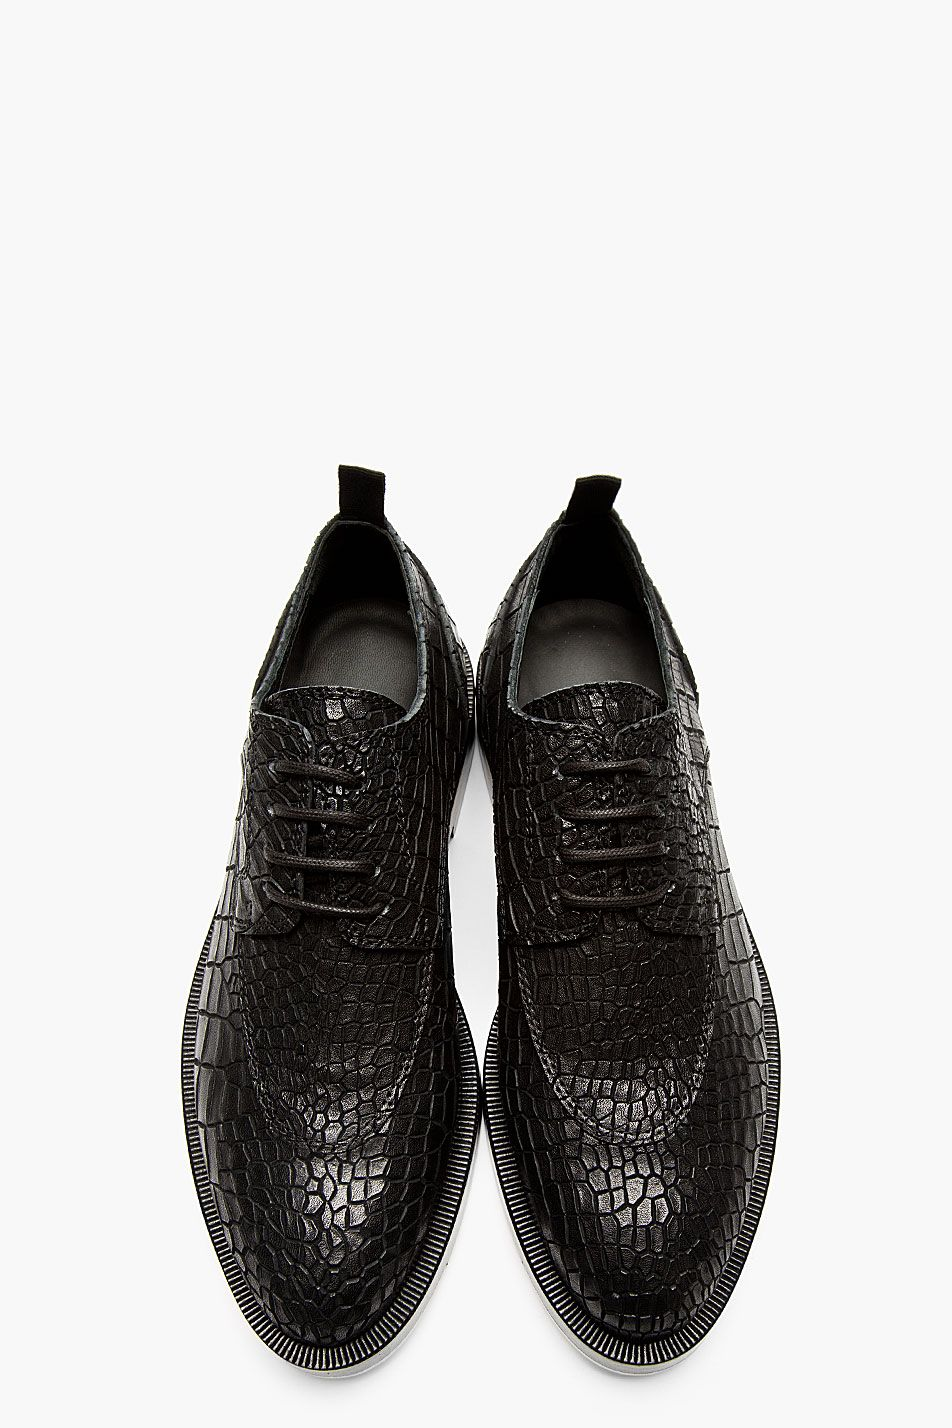 4968466b63 KRISVANASSCHE Black Etched Croc Pattern Oxford Shoes. Kris Van Assche ...